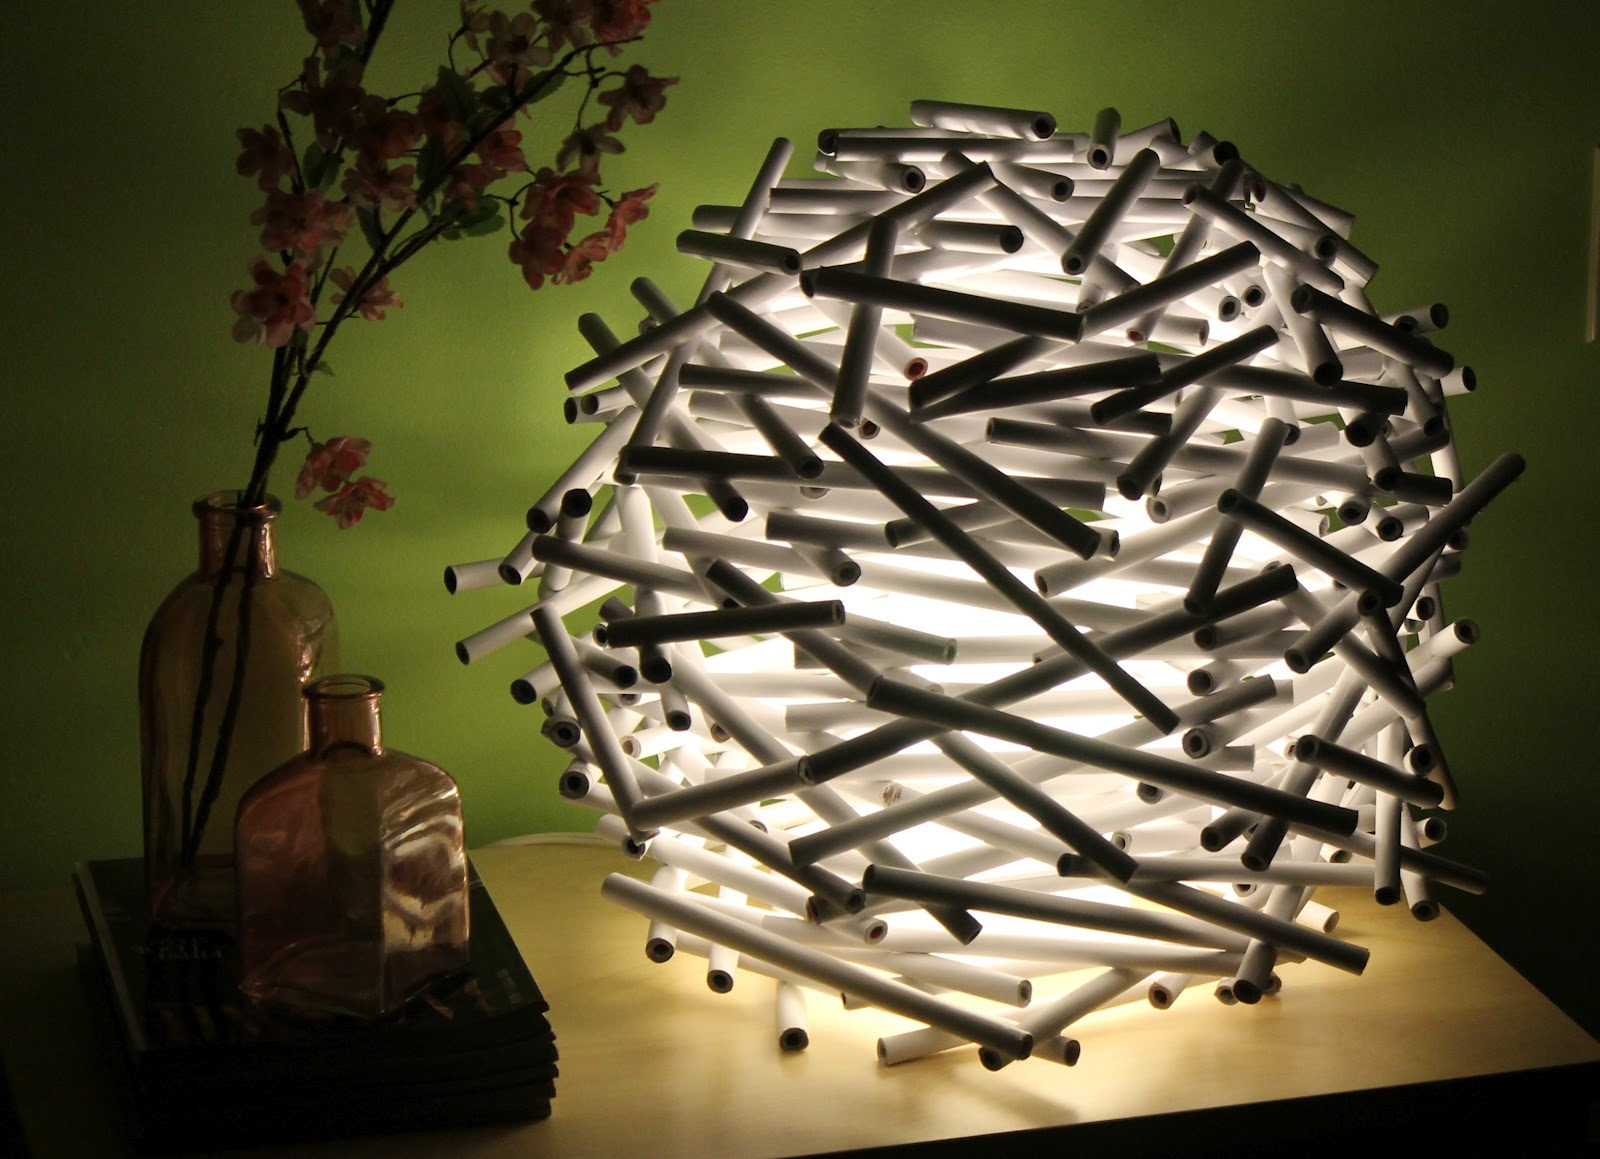 Diy how to make a bird 39 s nest lamp shade out of newspaper catch my party - Diy lamp shade ...